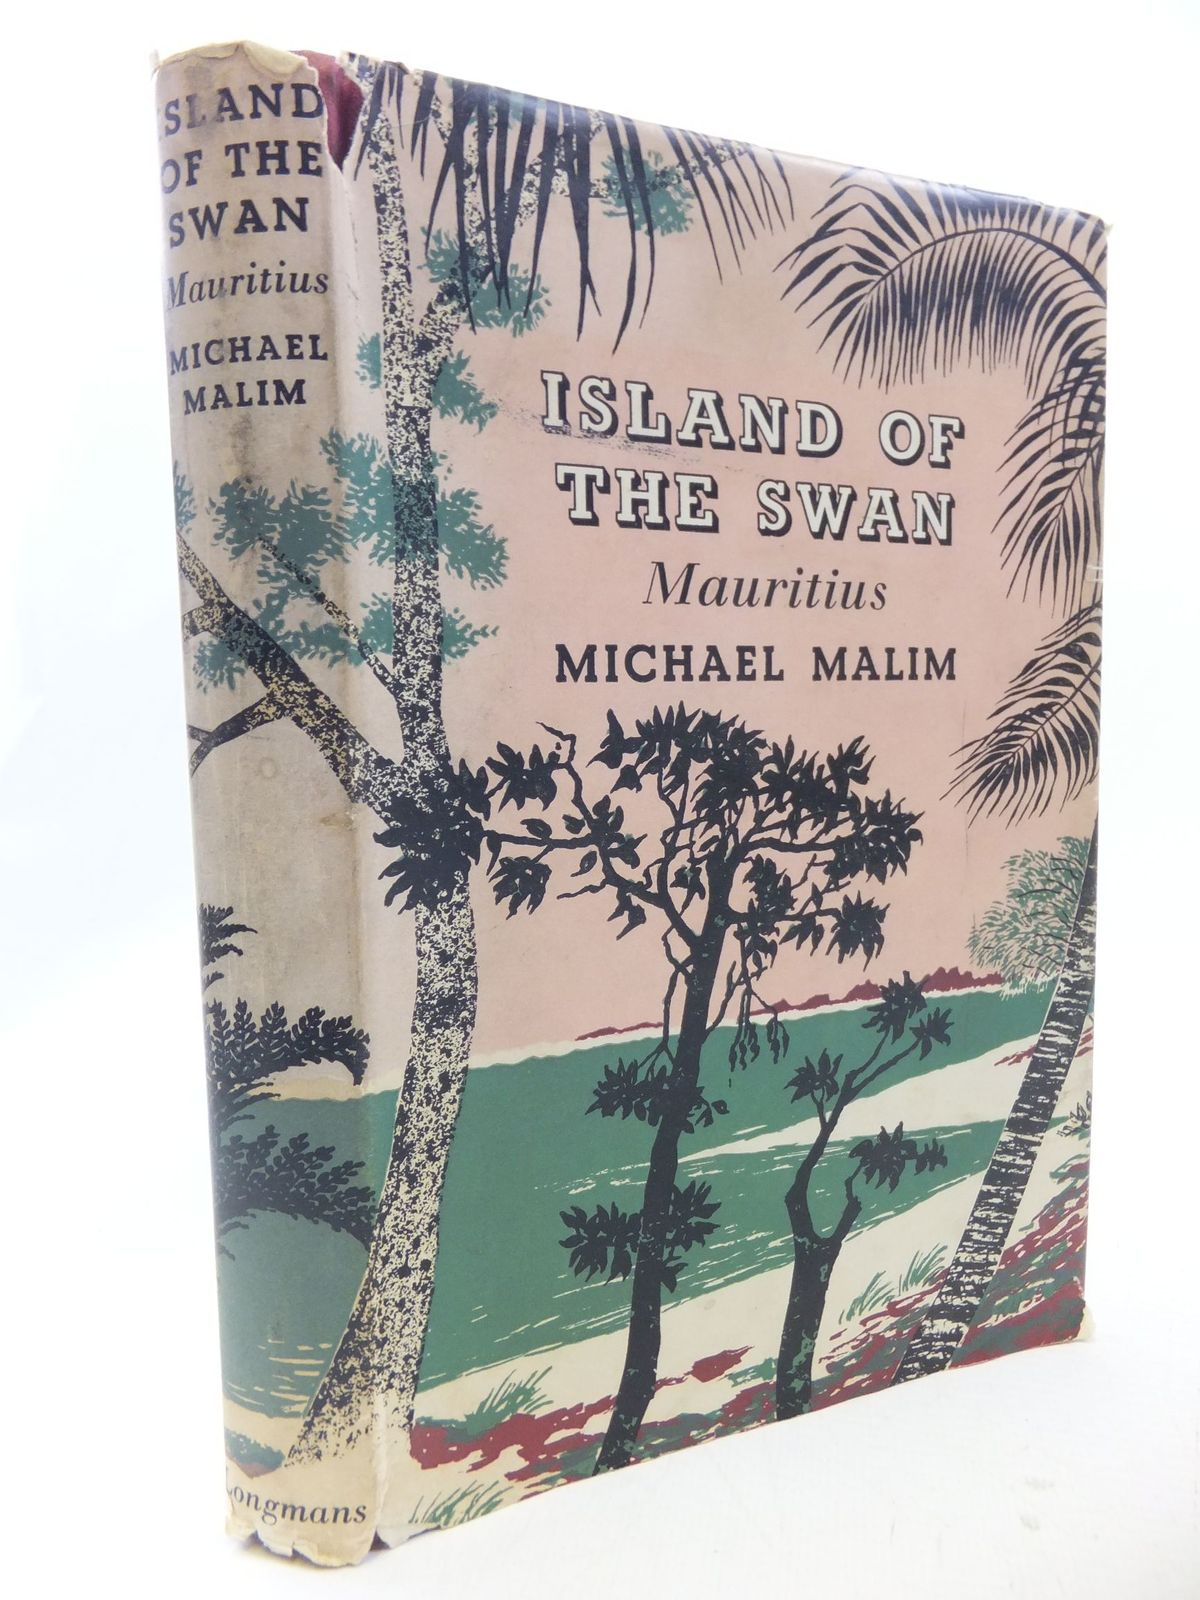 Mauritian Cookbook Cover : The island of swan mauritius written by malim michael